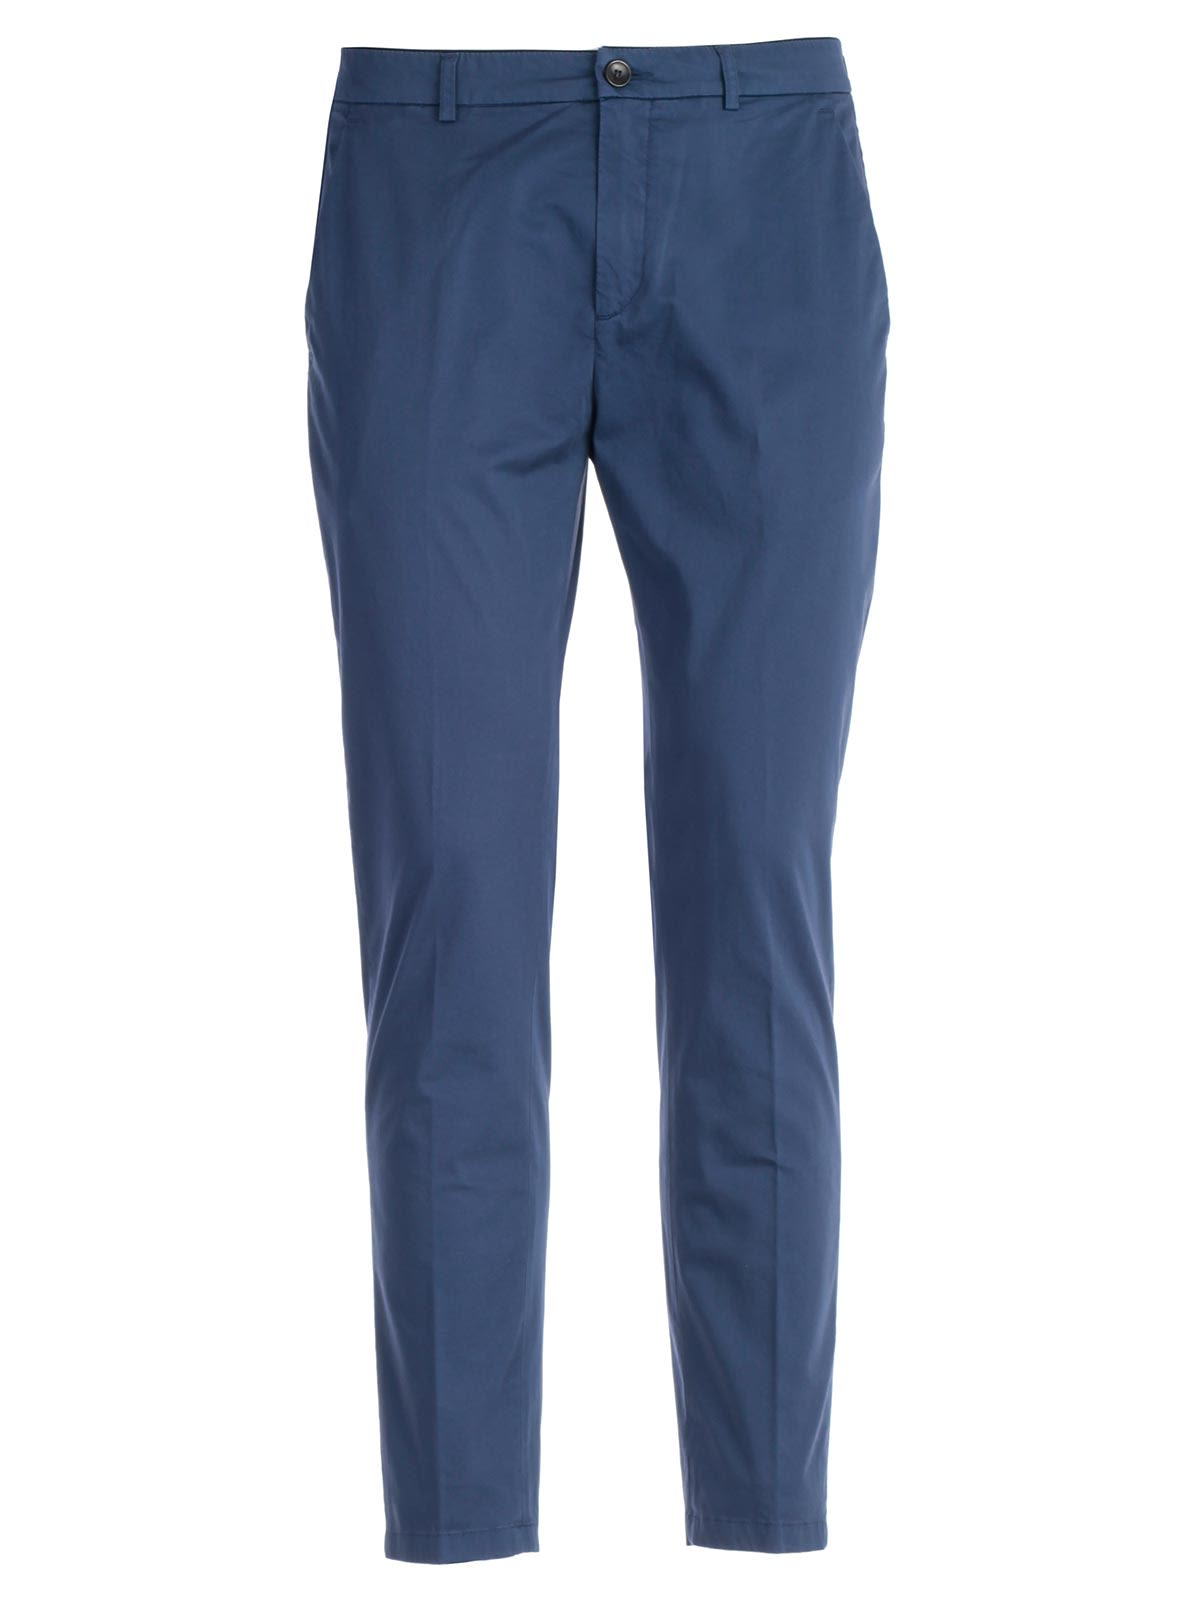 Department 5 Classic Buttoned Trousers